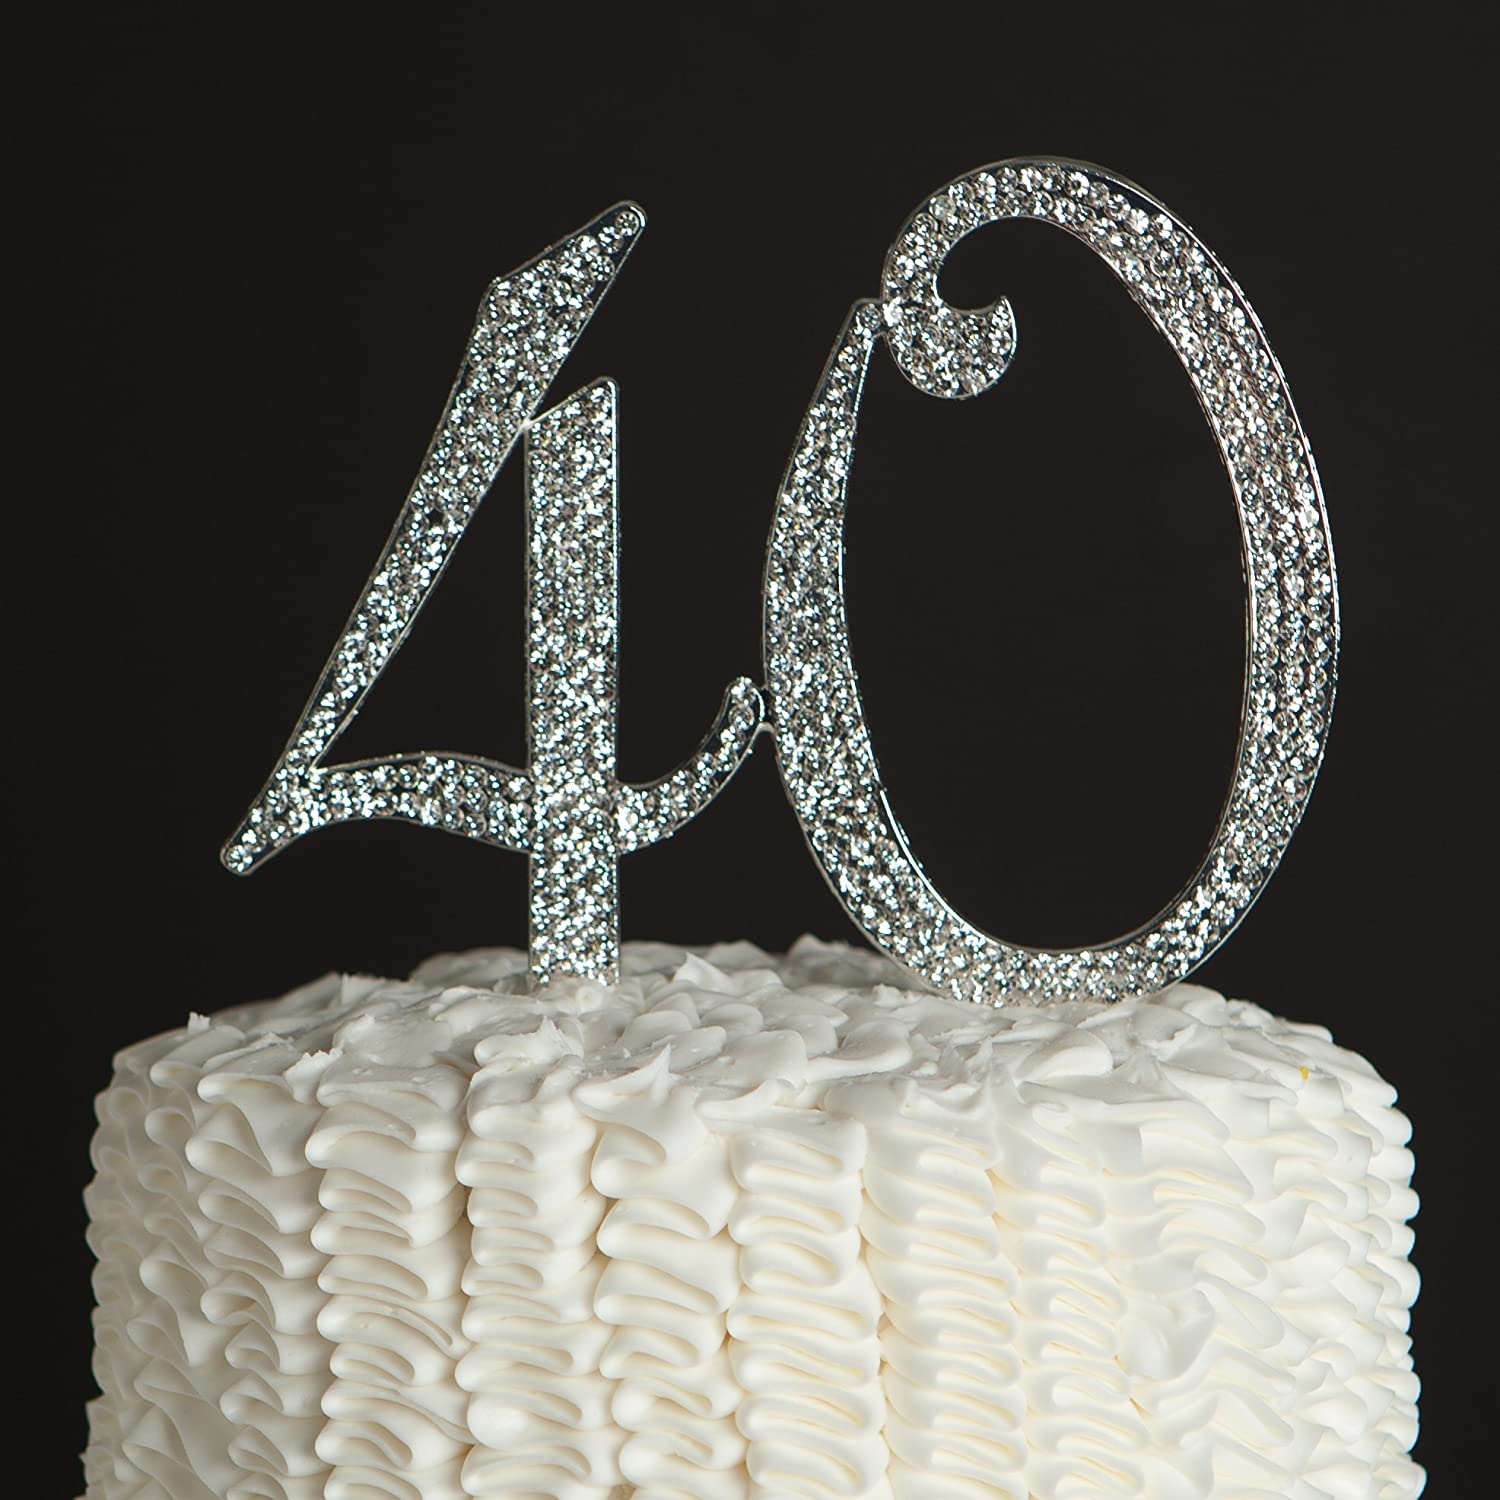 Amazoncom Ella Celebration 40 Cake Topper for 40th Birthday or